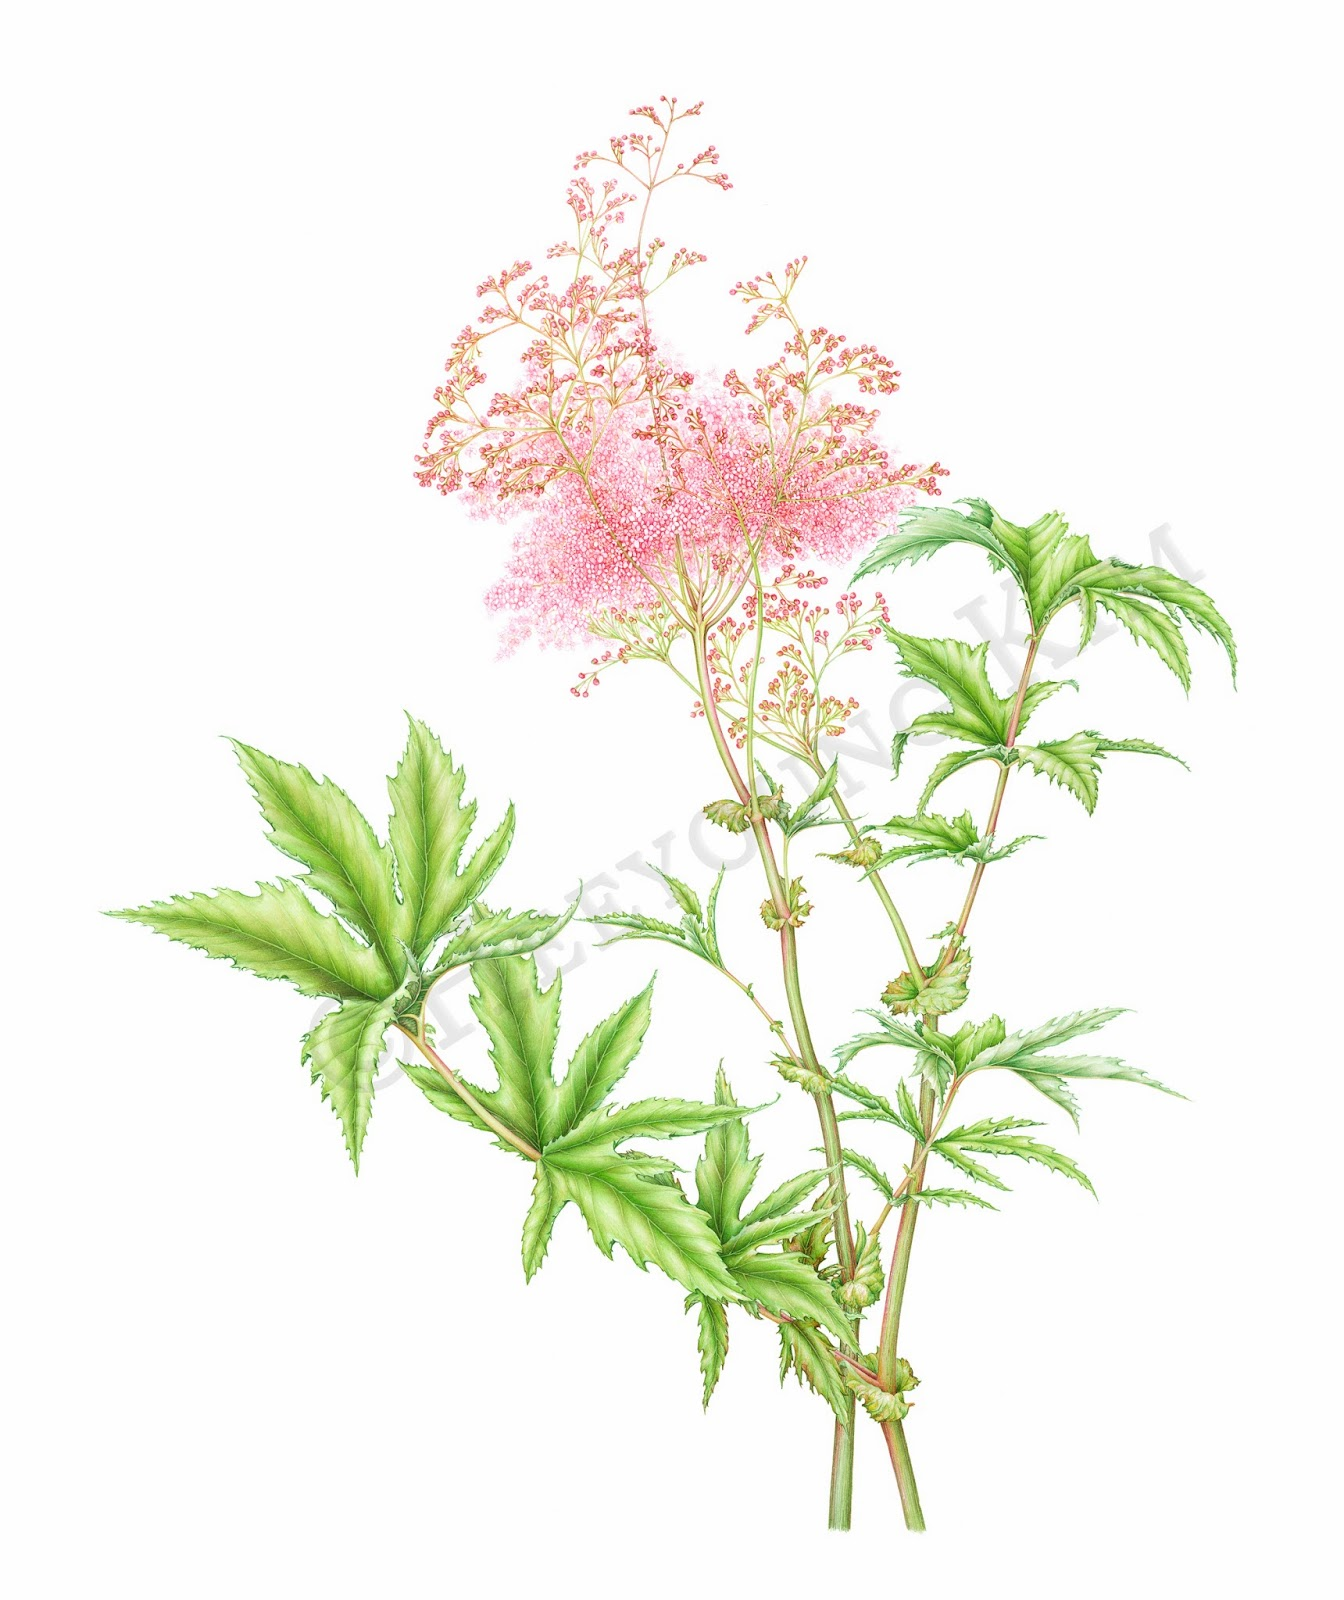 project 200 documenting prairie and woodland plants 30 queen of the prairie filipendula rubra. Black Bedroom Furniture Sets. Home Design Ideas